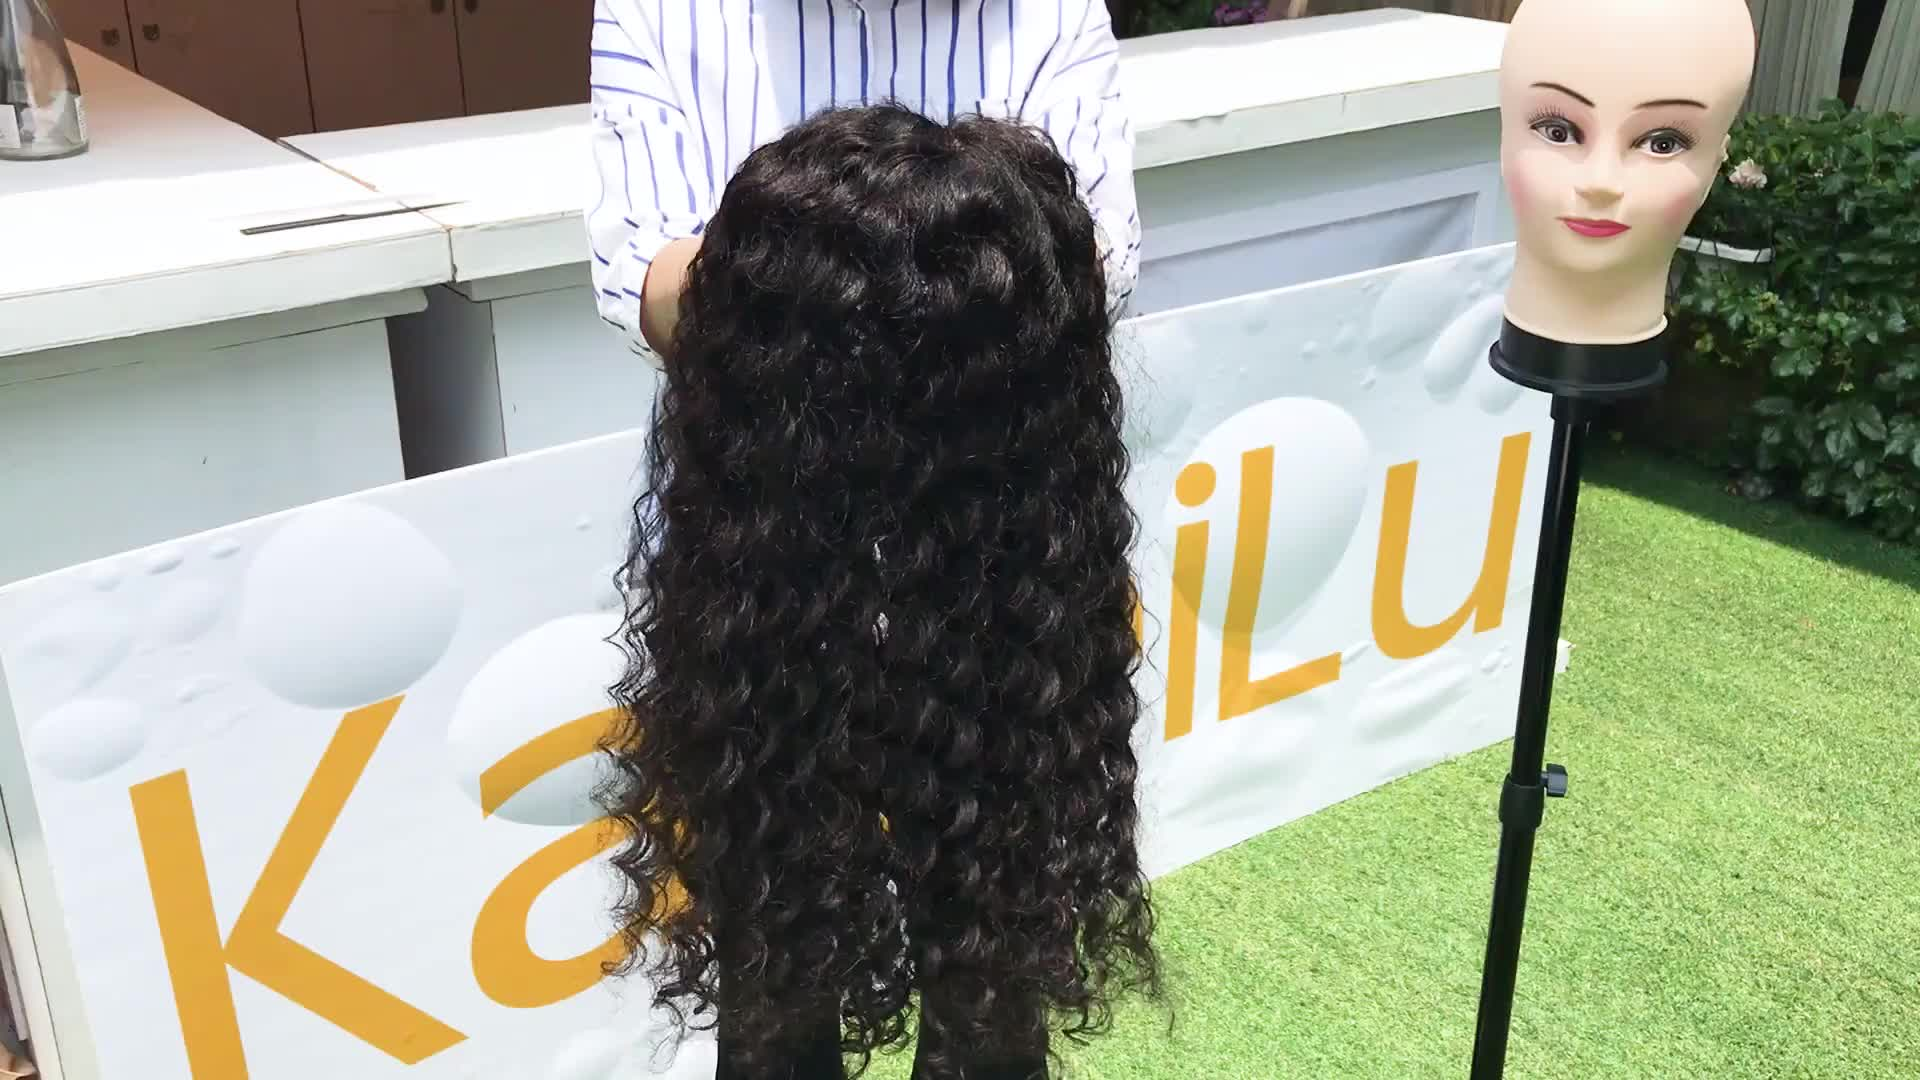 Golden Supplier supply ladies wig blonde body wave full lace wigs naturelle,long human hair wigs,african wigs black women